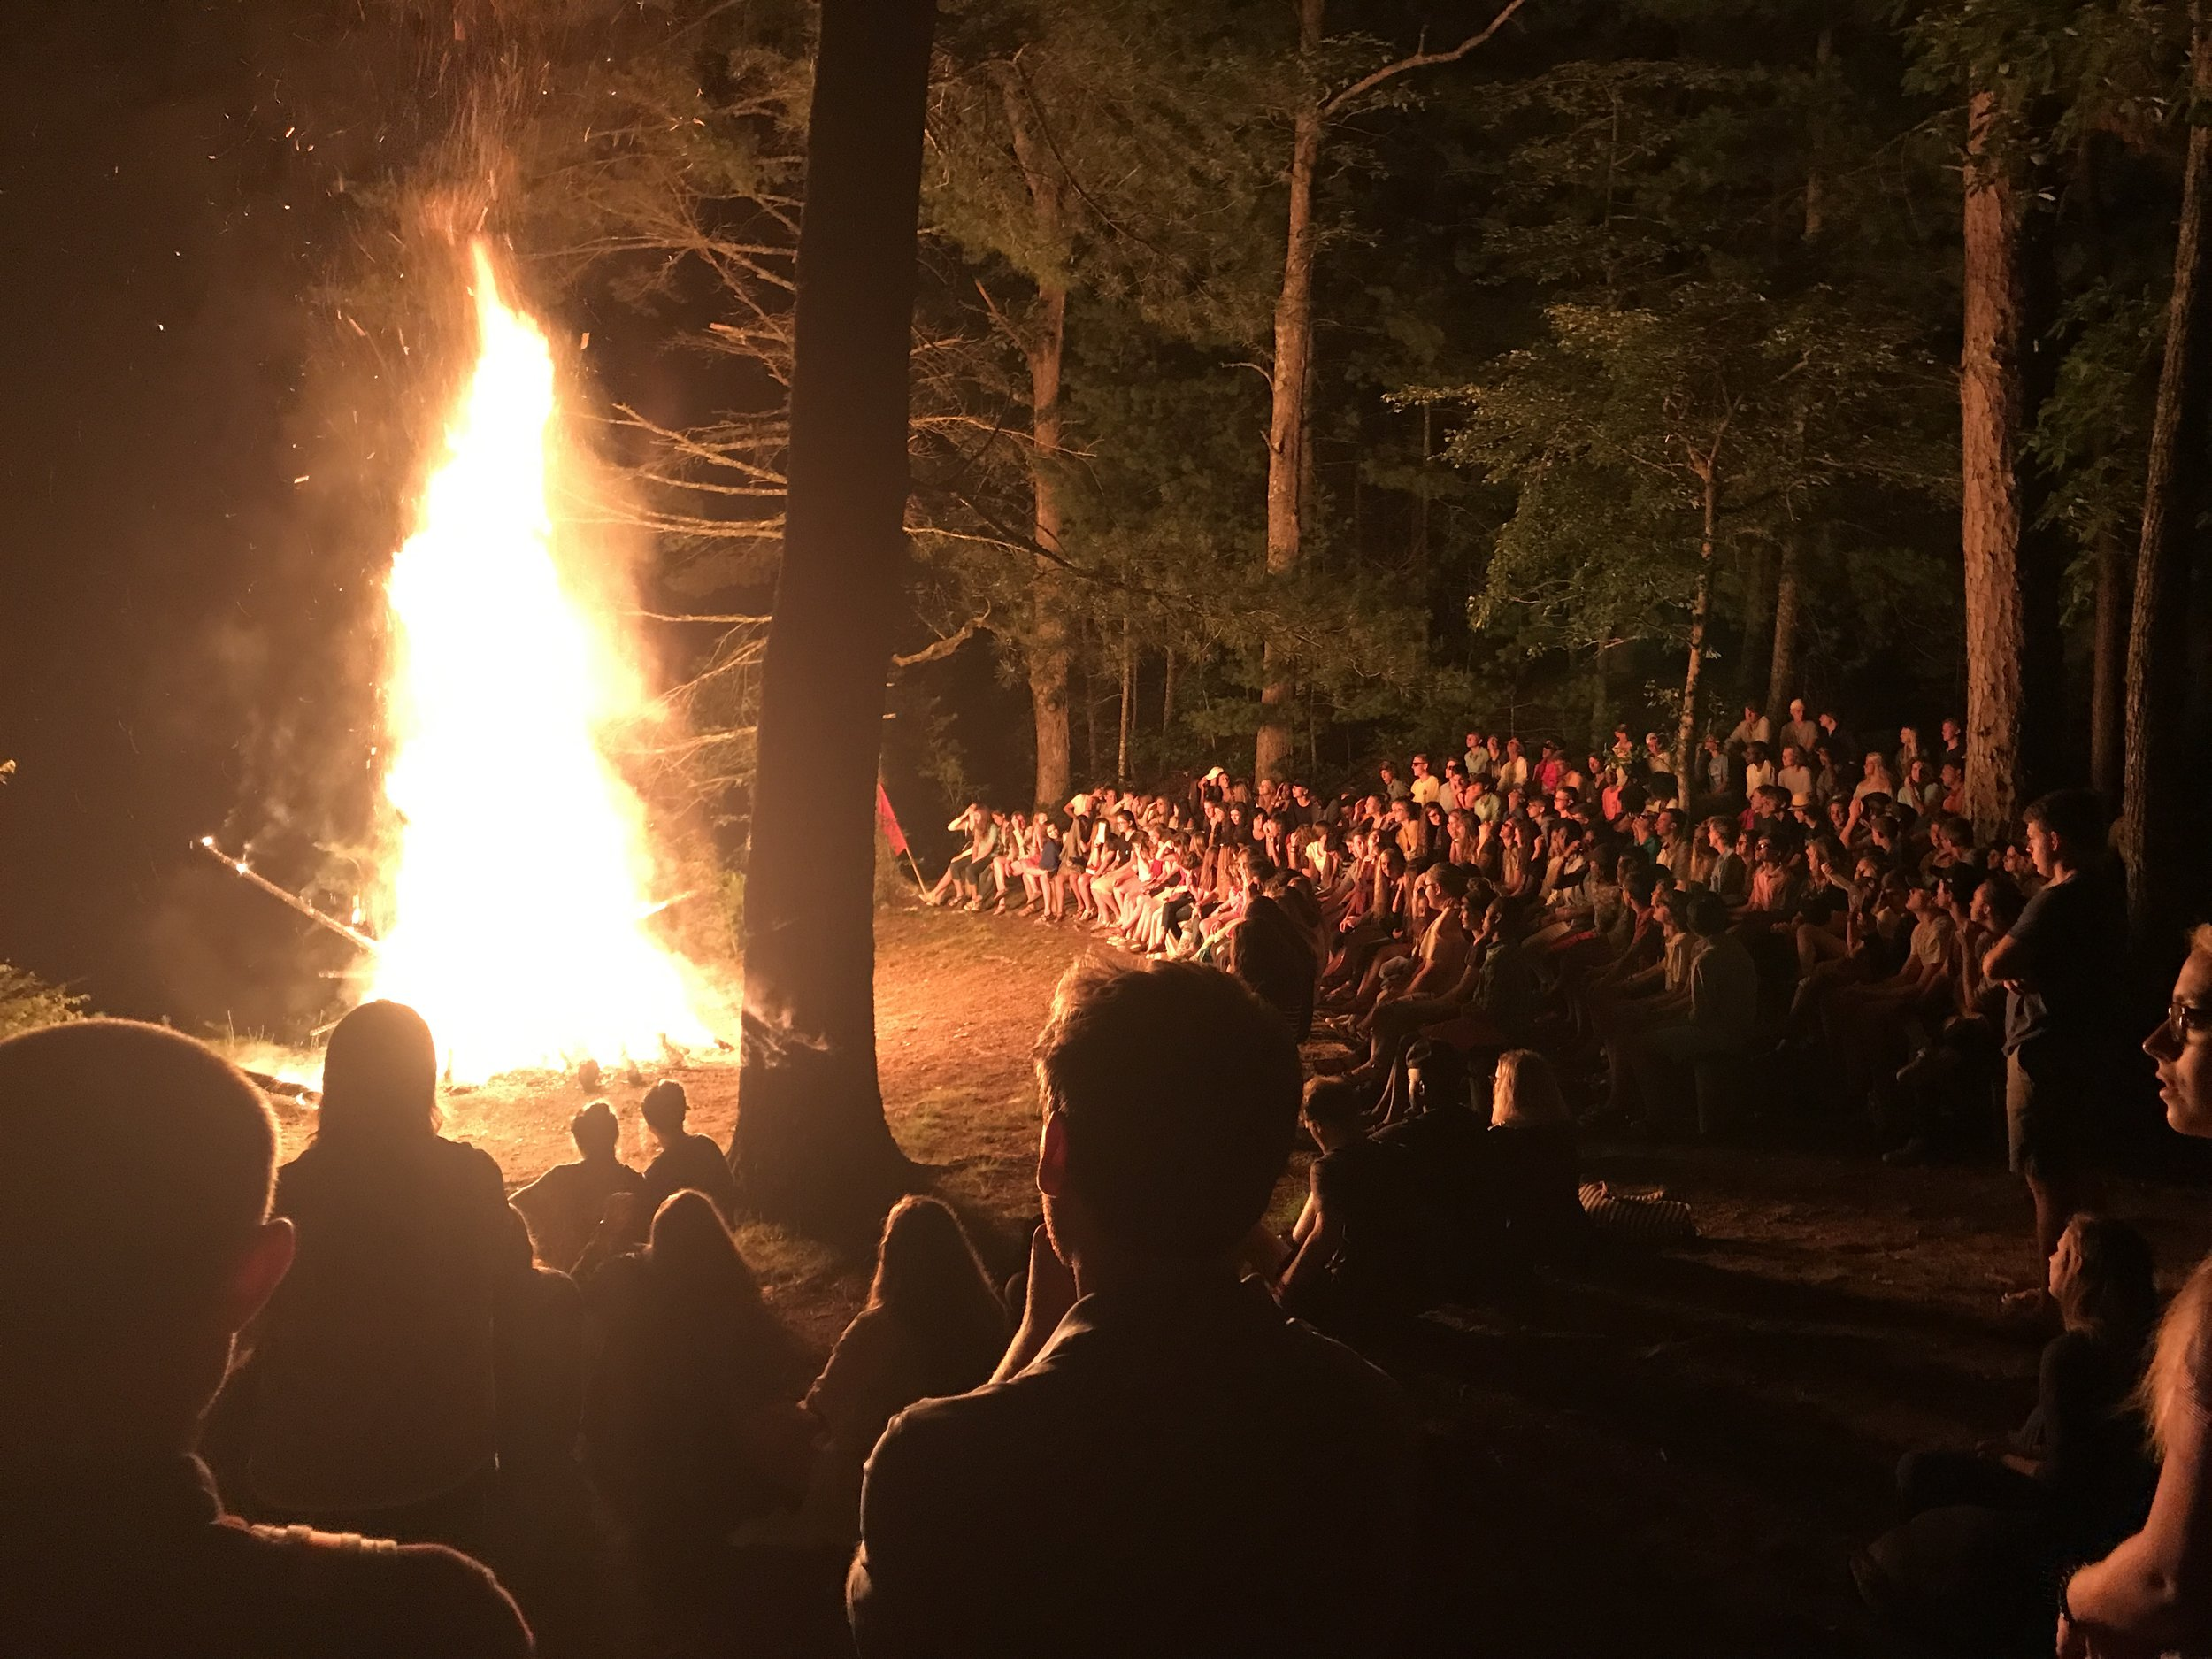 We respected this moment. We remained extremely quiet while walking to Campfire and while others told their story.